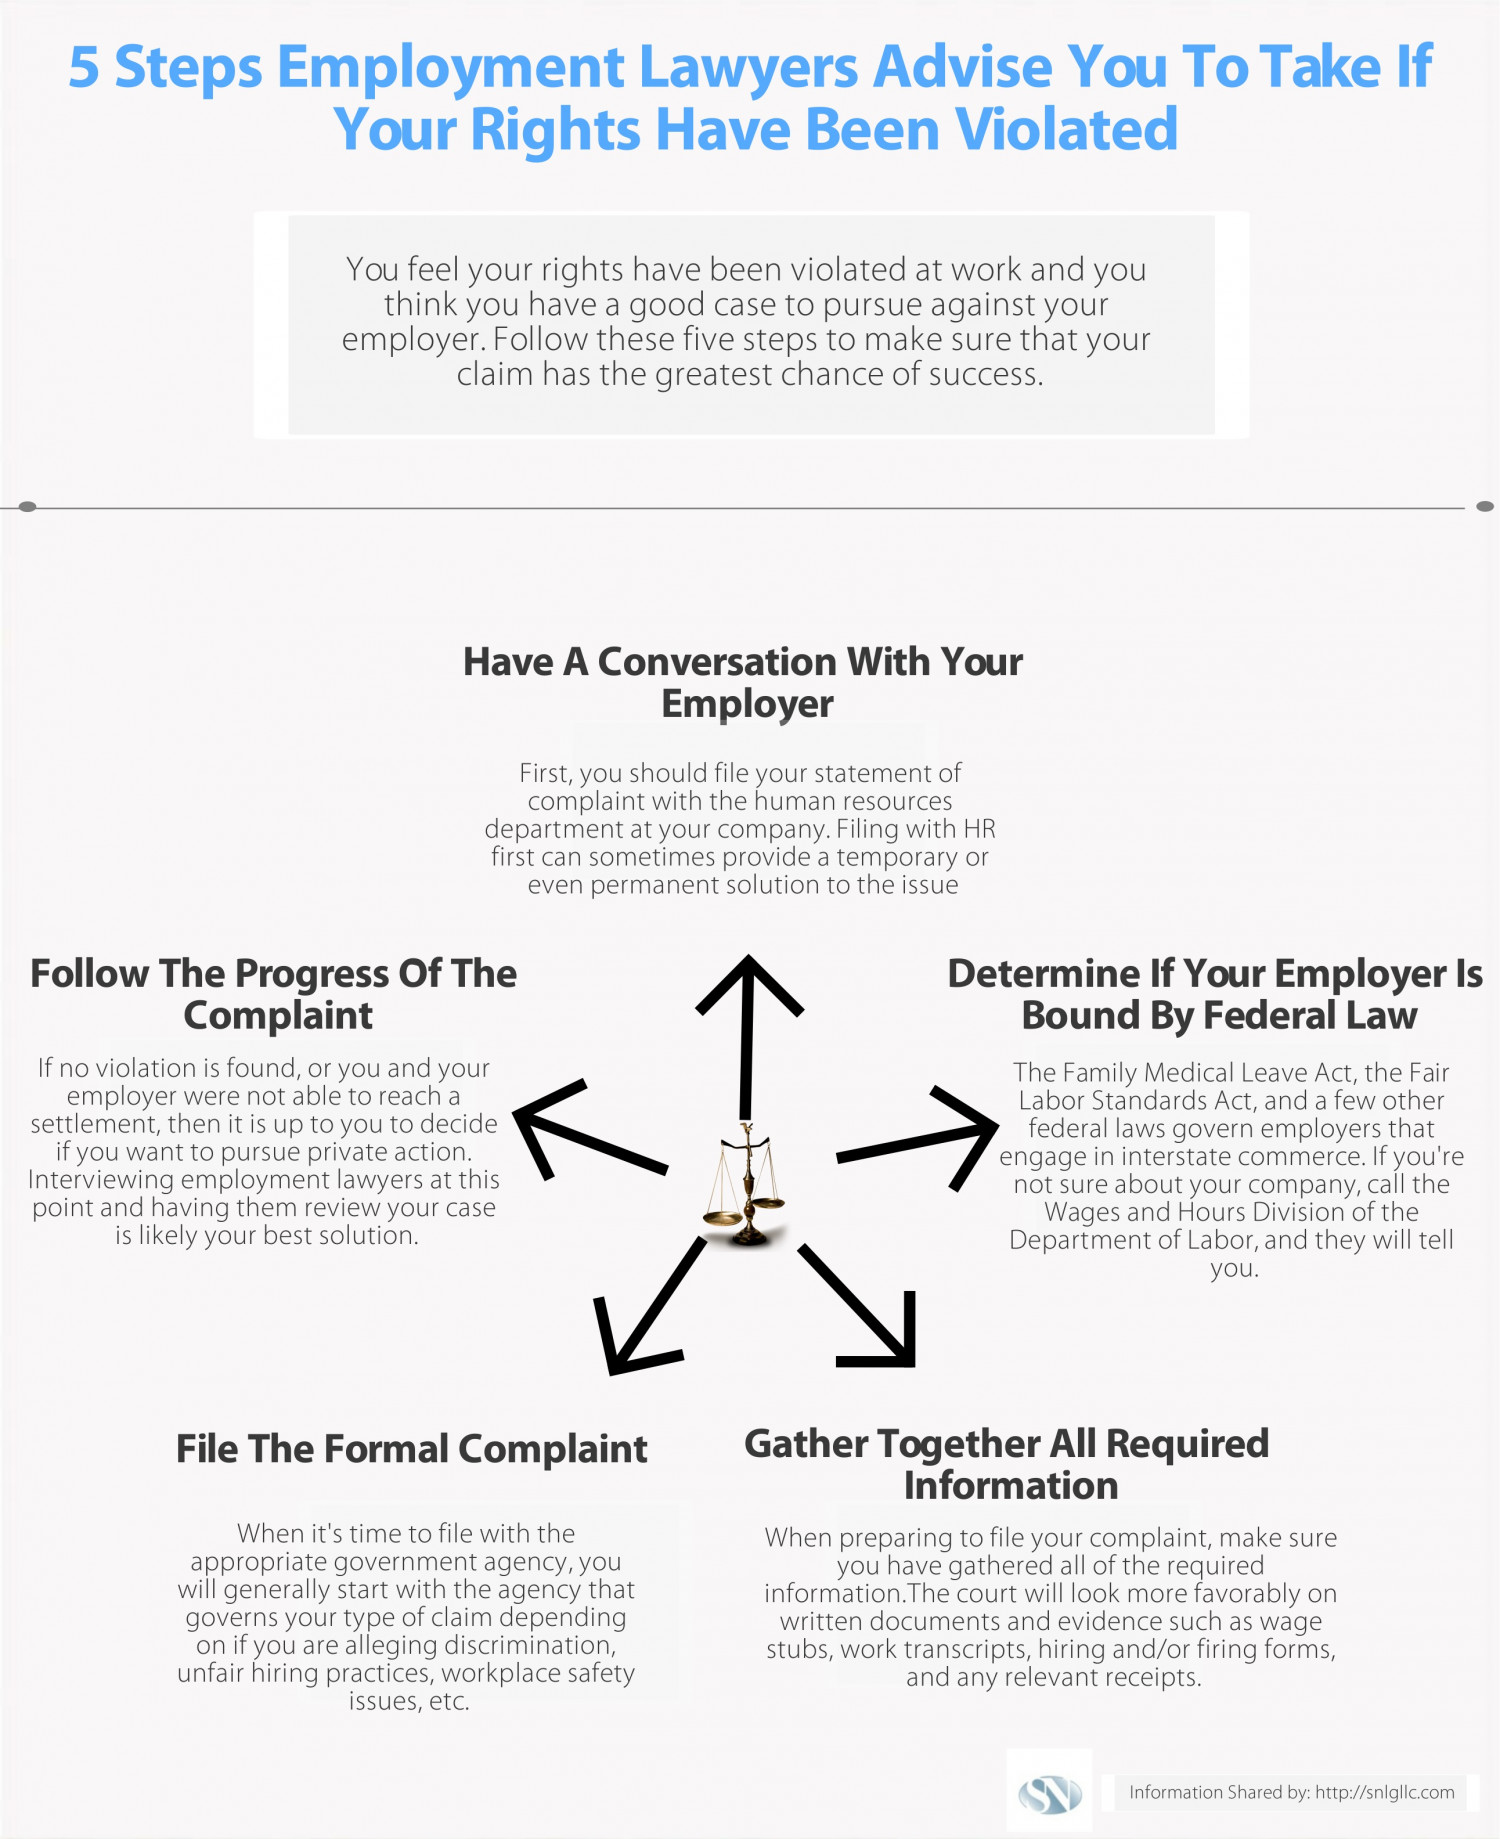 5 Steps Employment Lawyers Advise You To Take If Your Rights Have Been Violated Infographic